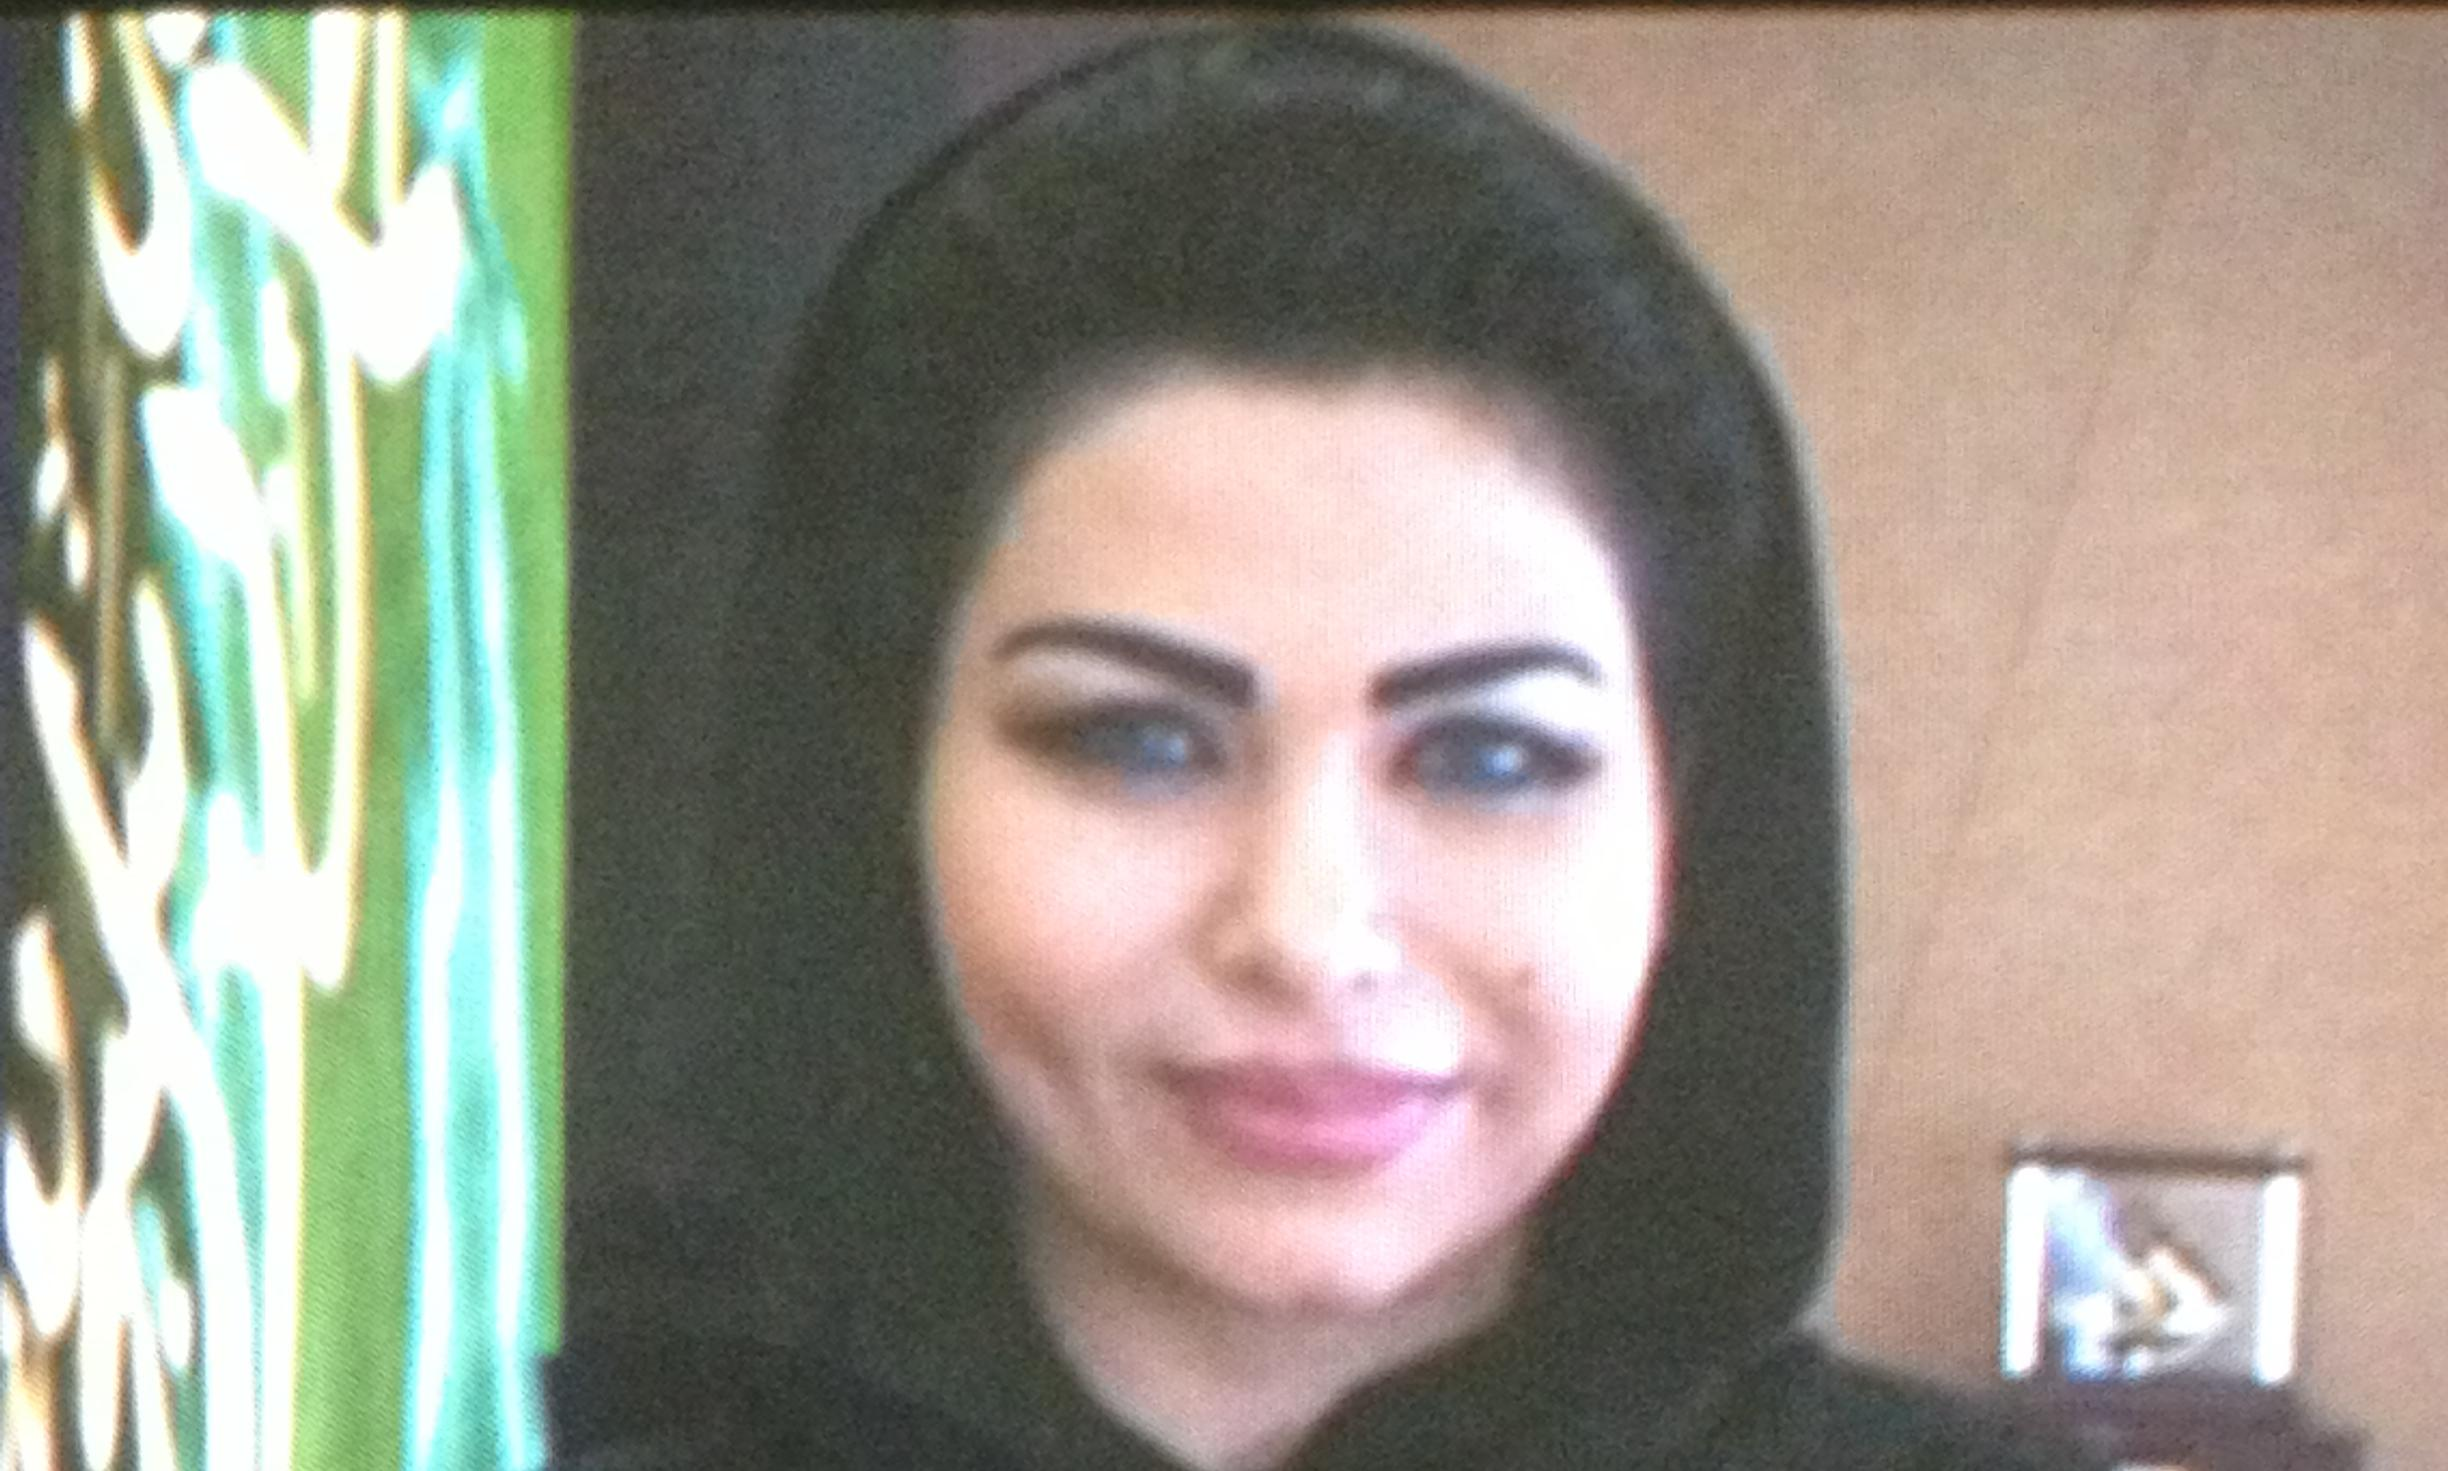 Saudi Arabia TV presenter accused of wearing indecent clothes